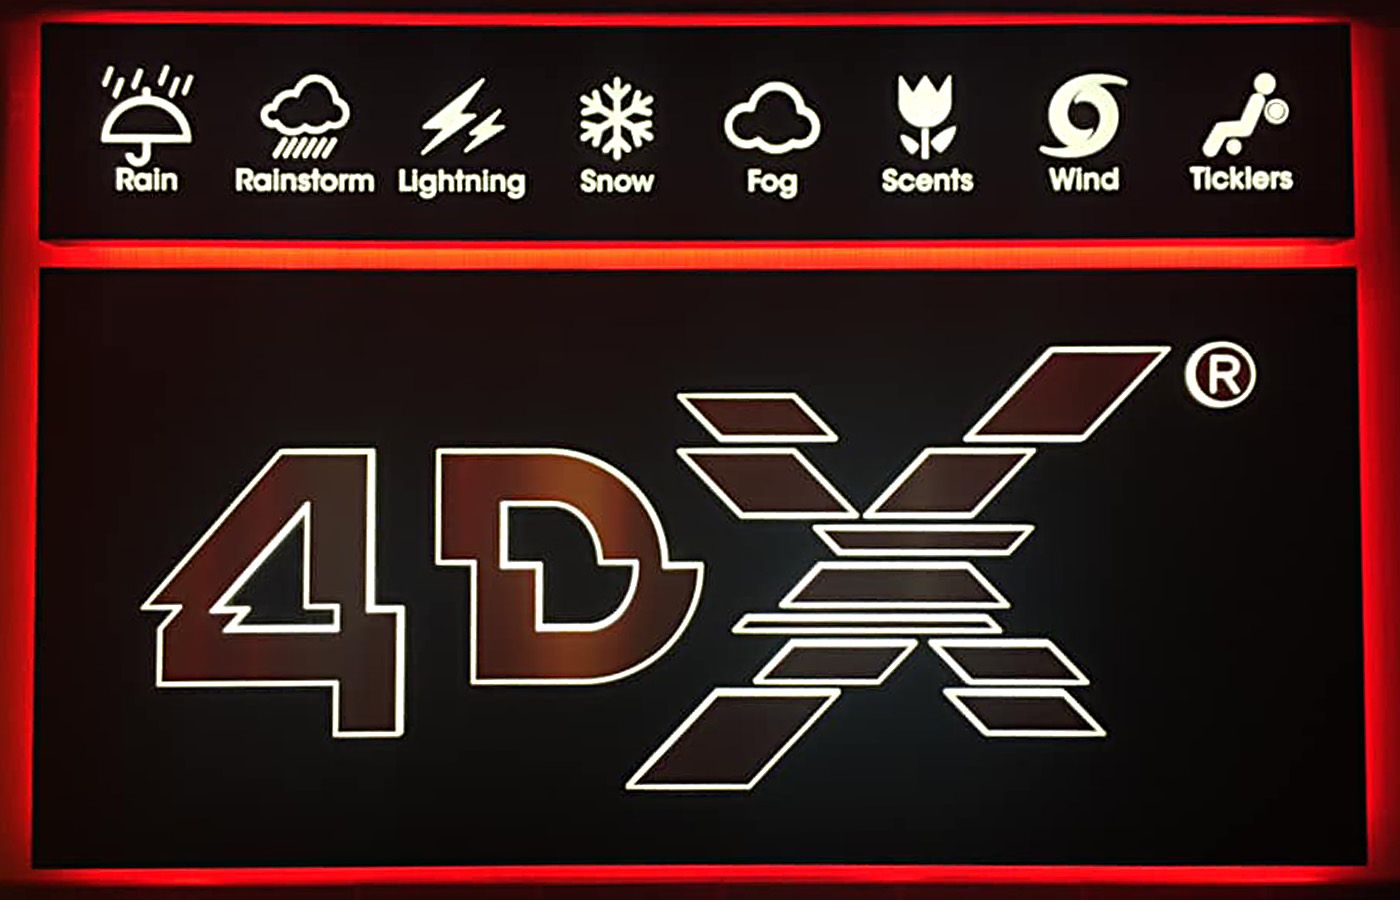 """Avengers: Endgame"" as a 4DX Experience!"